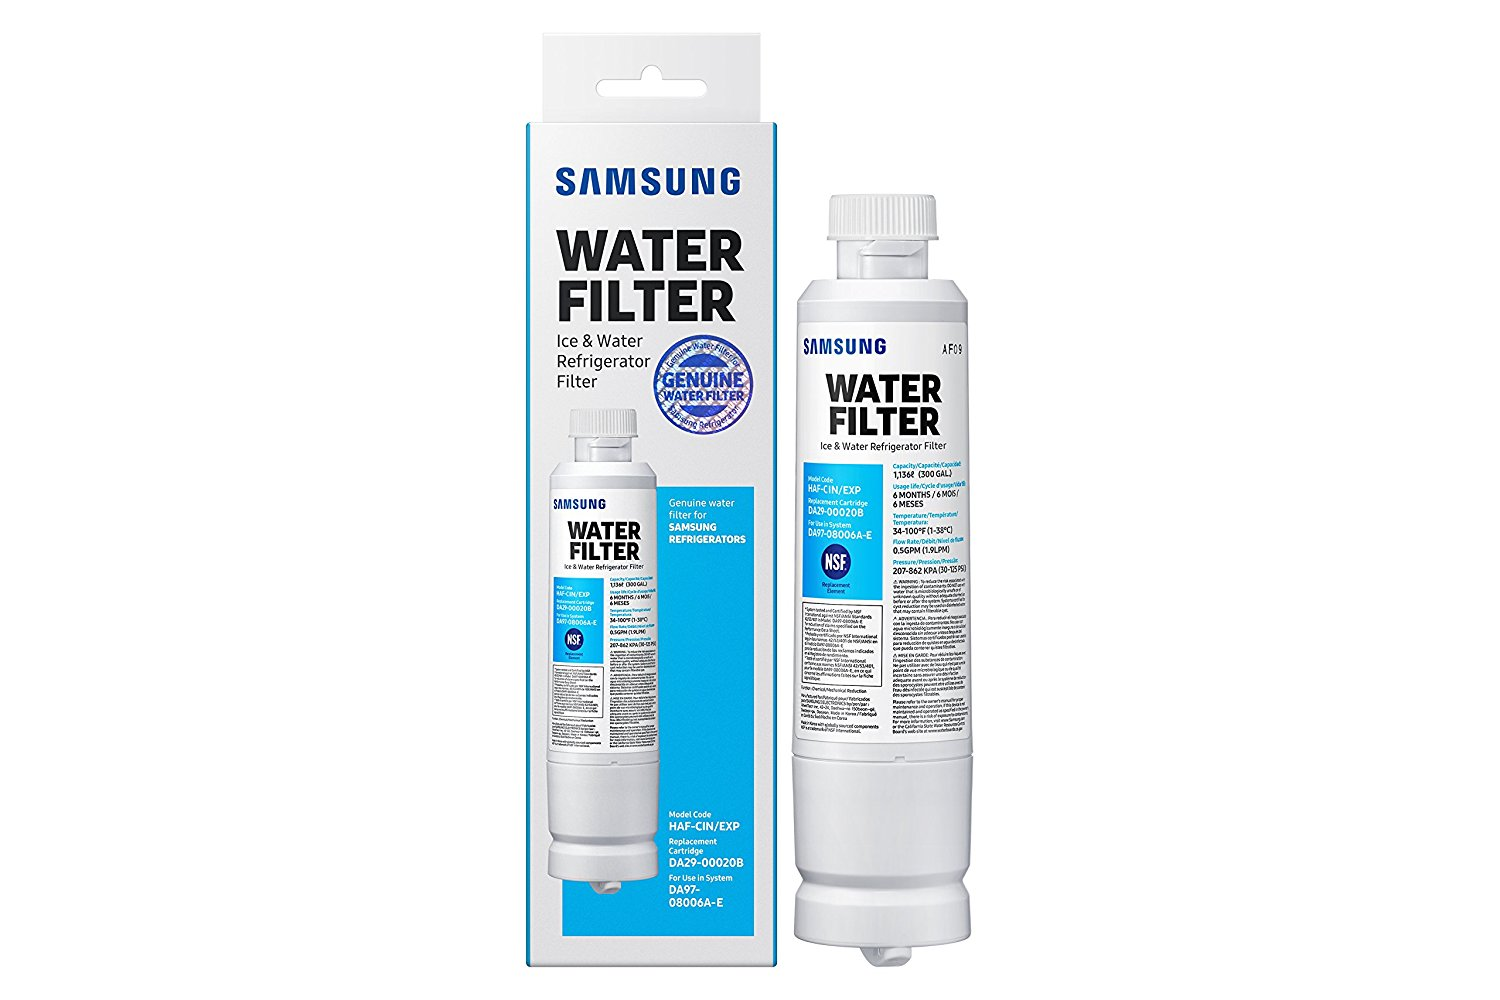 Samsung model HAF-CIN-EXP Refrigerator Water Filter